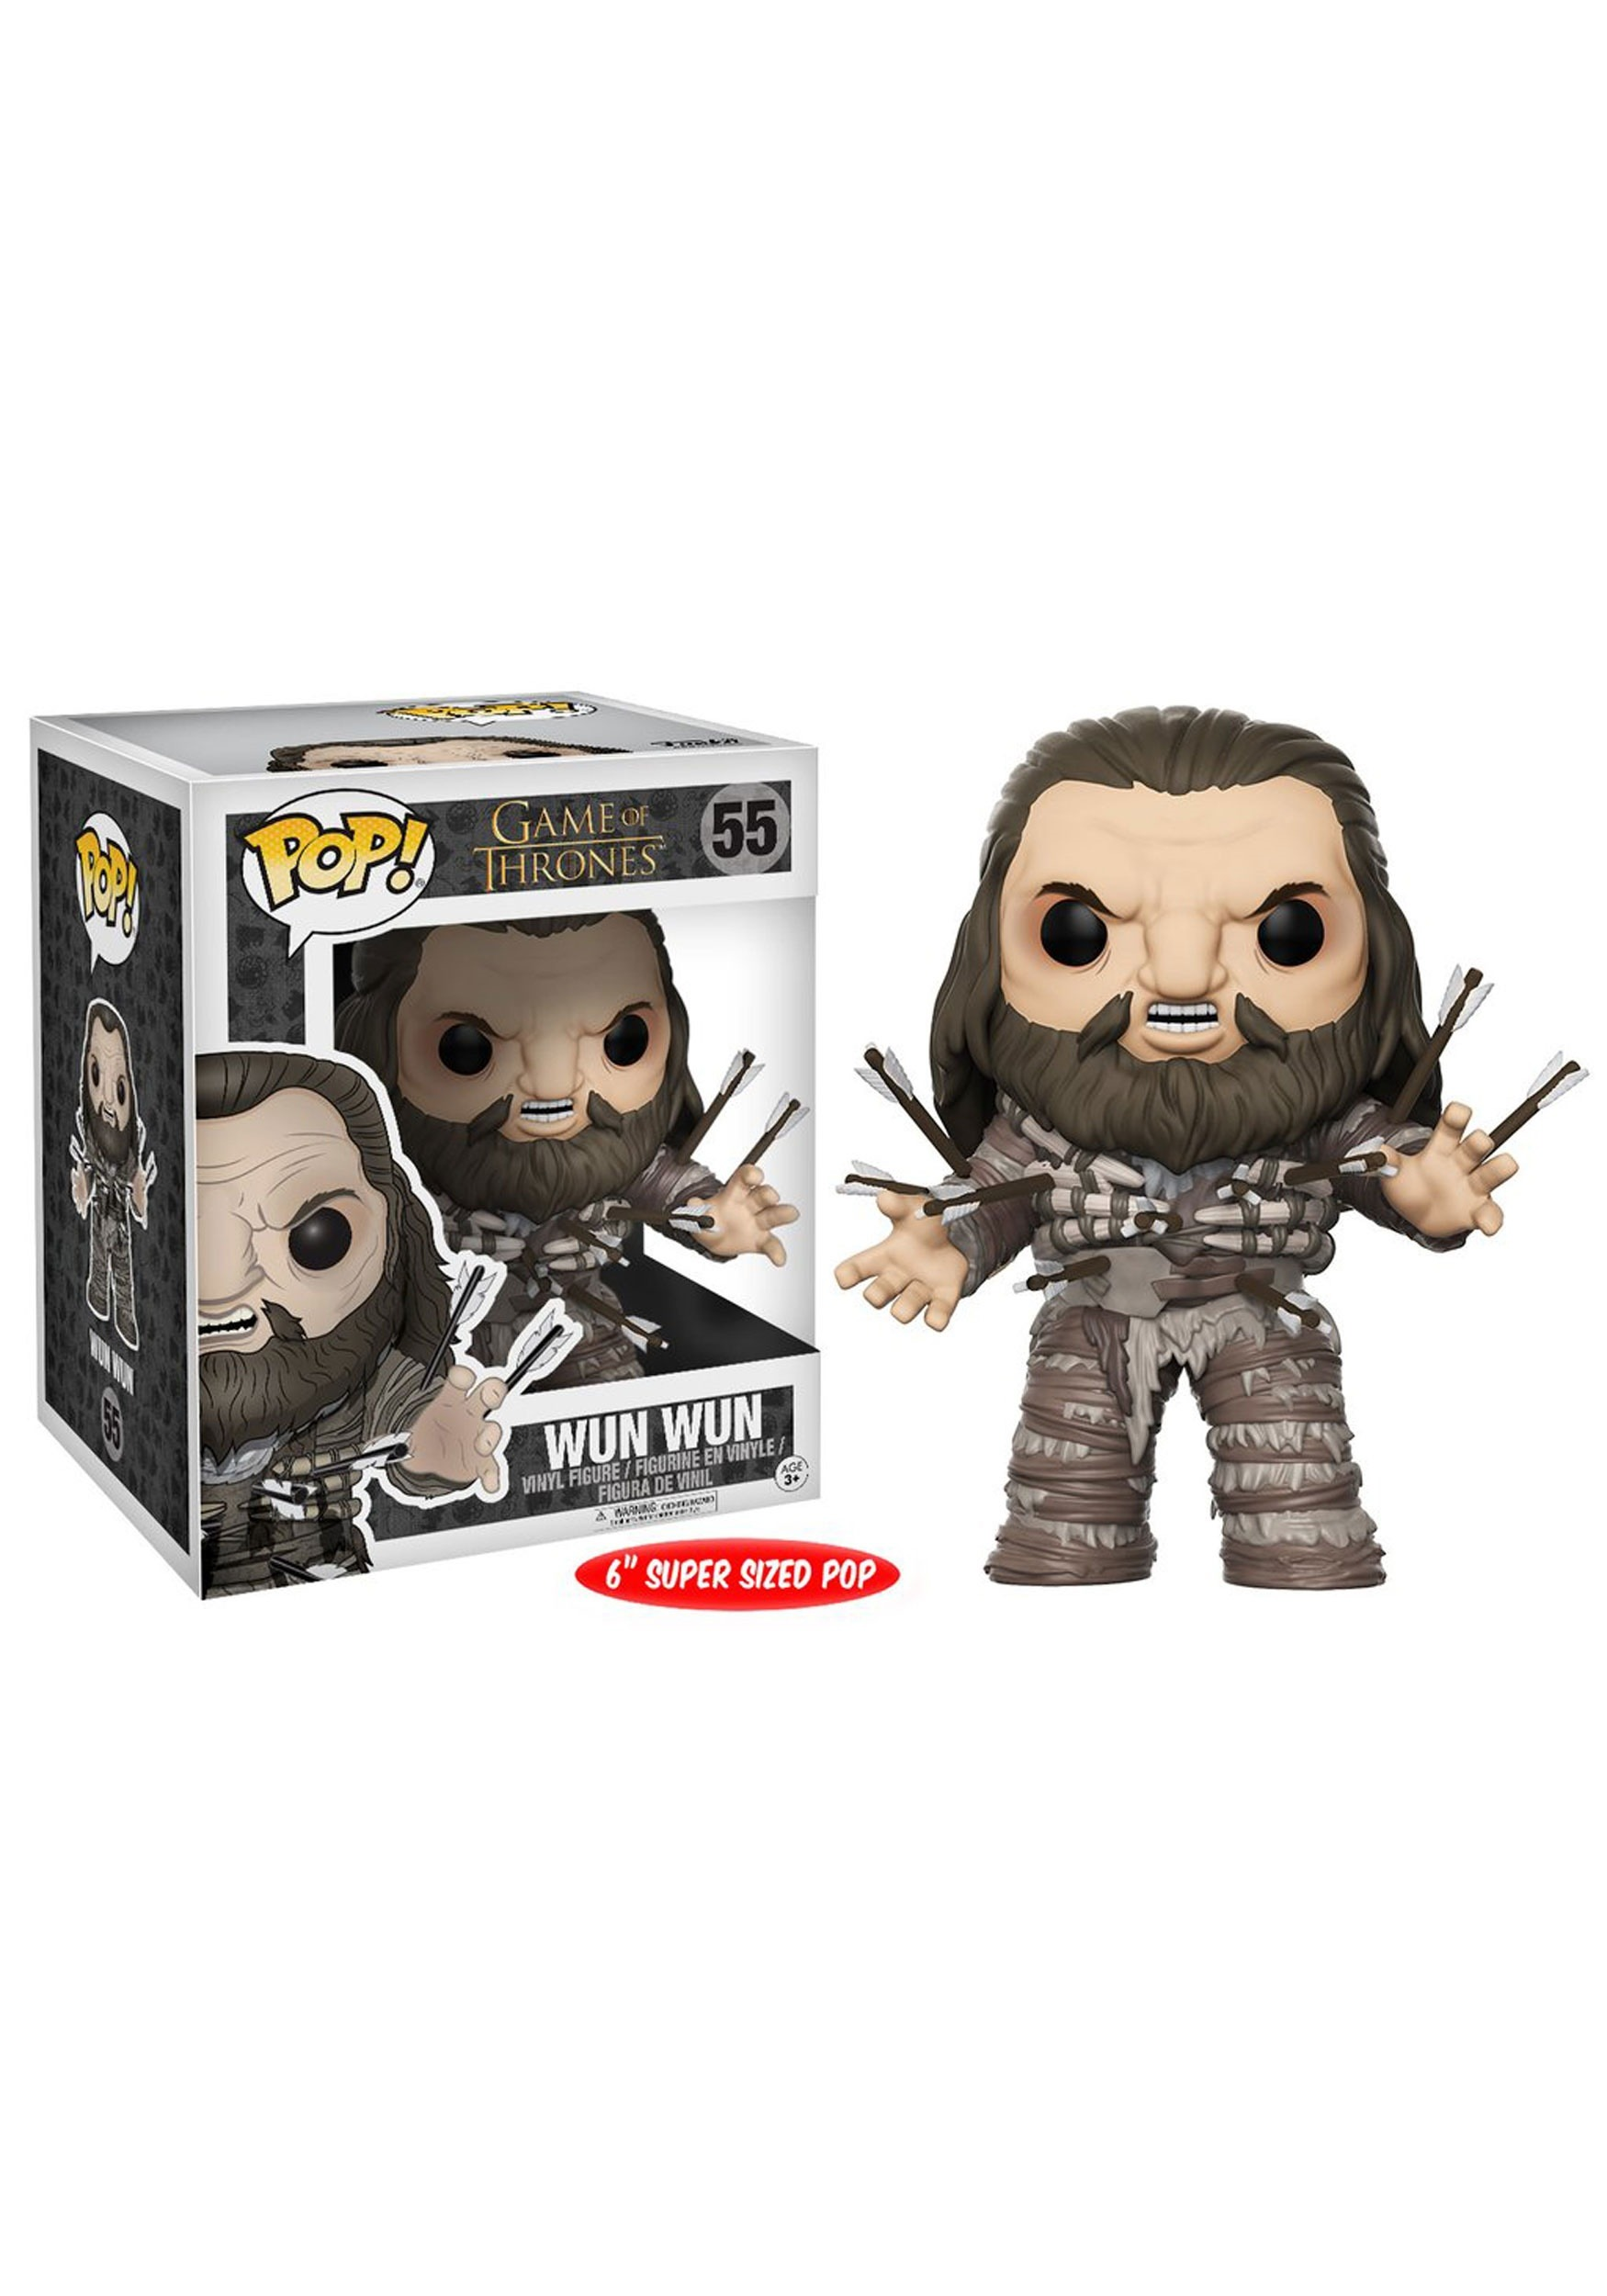 "Game of Thrones Wun Wun w/ Arrows 6"" POP Vinyl Figure FN12222"